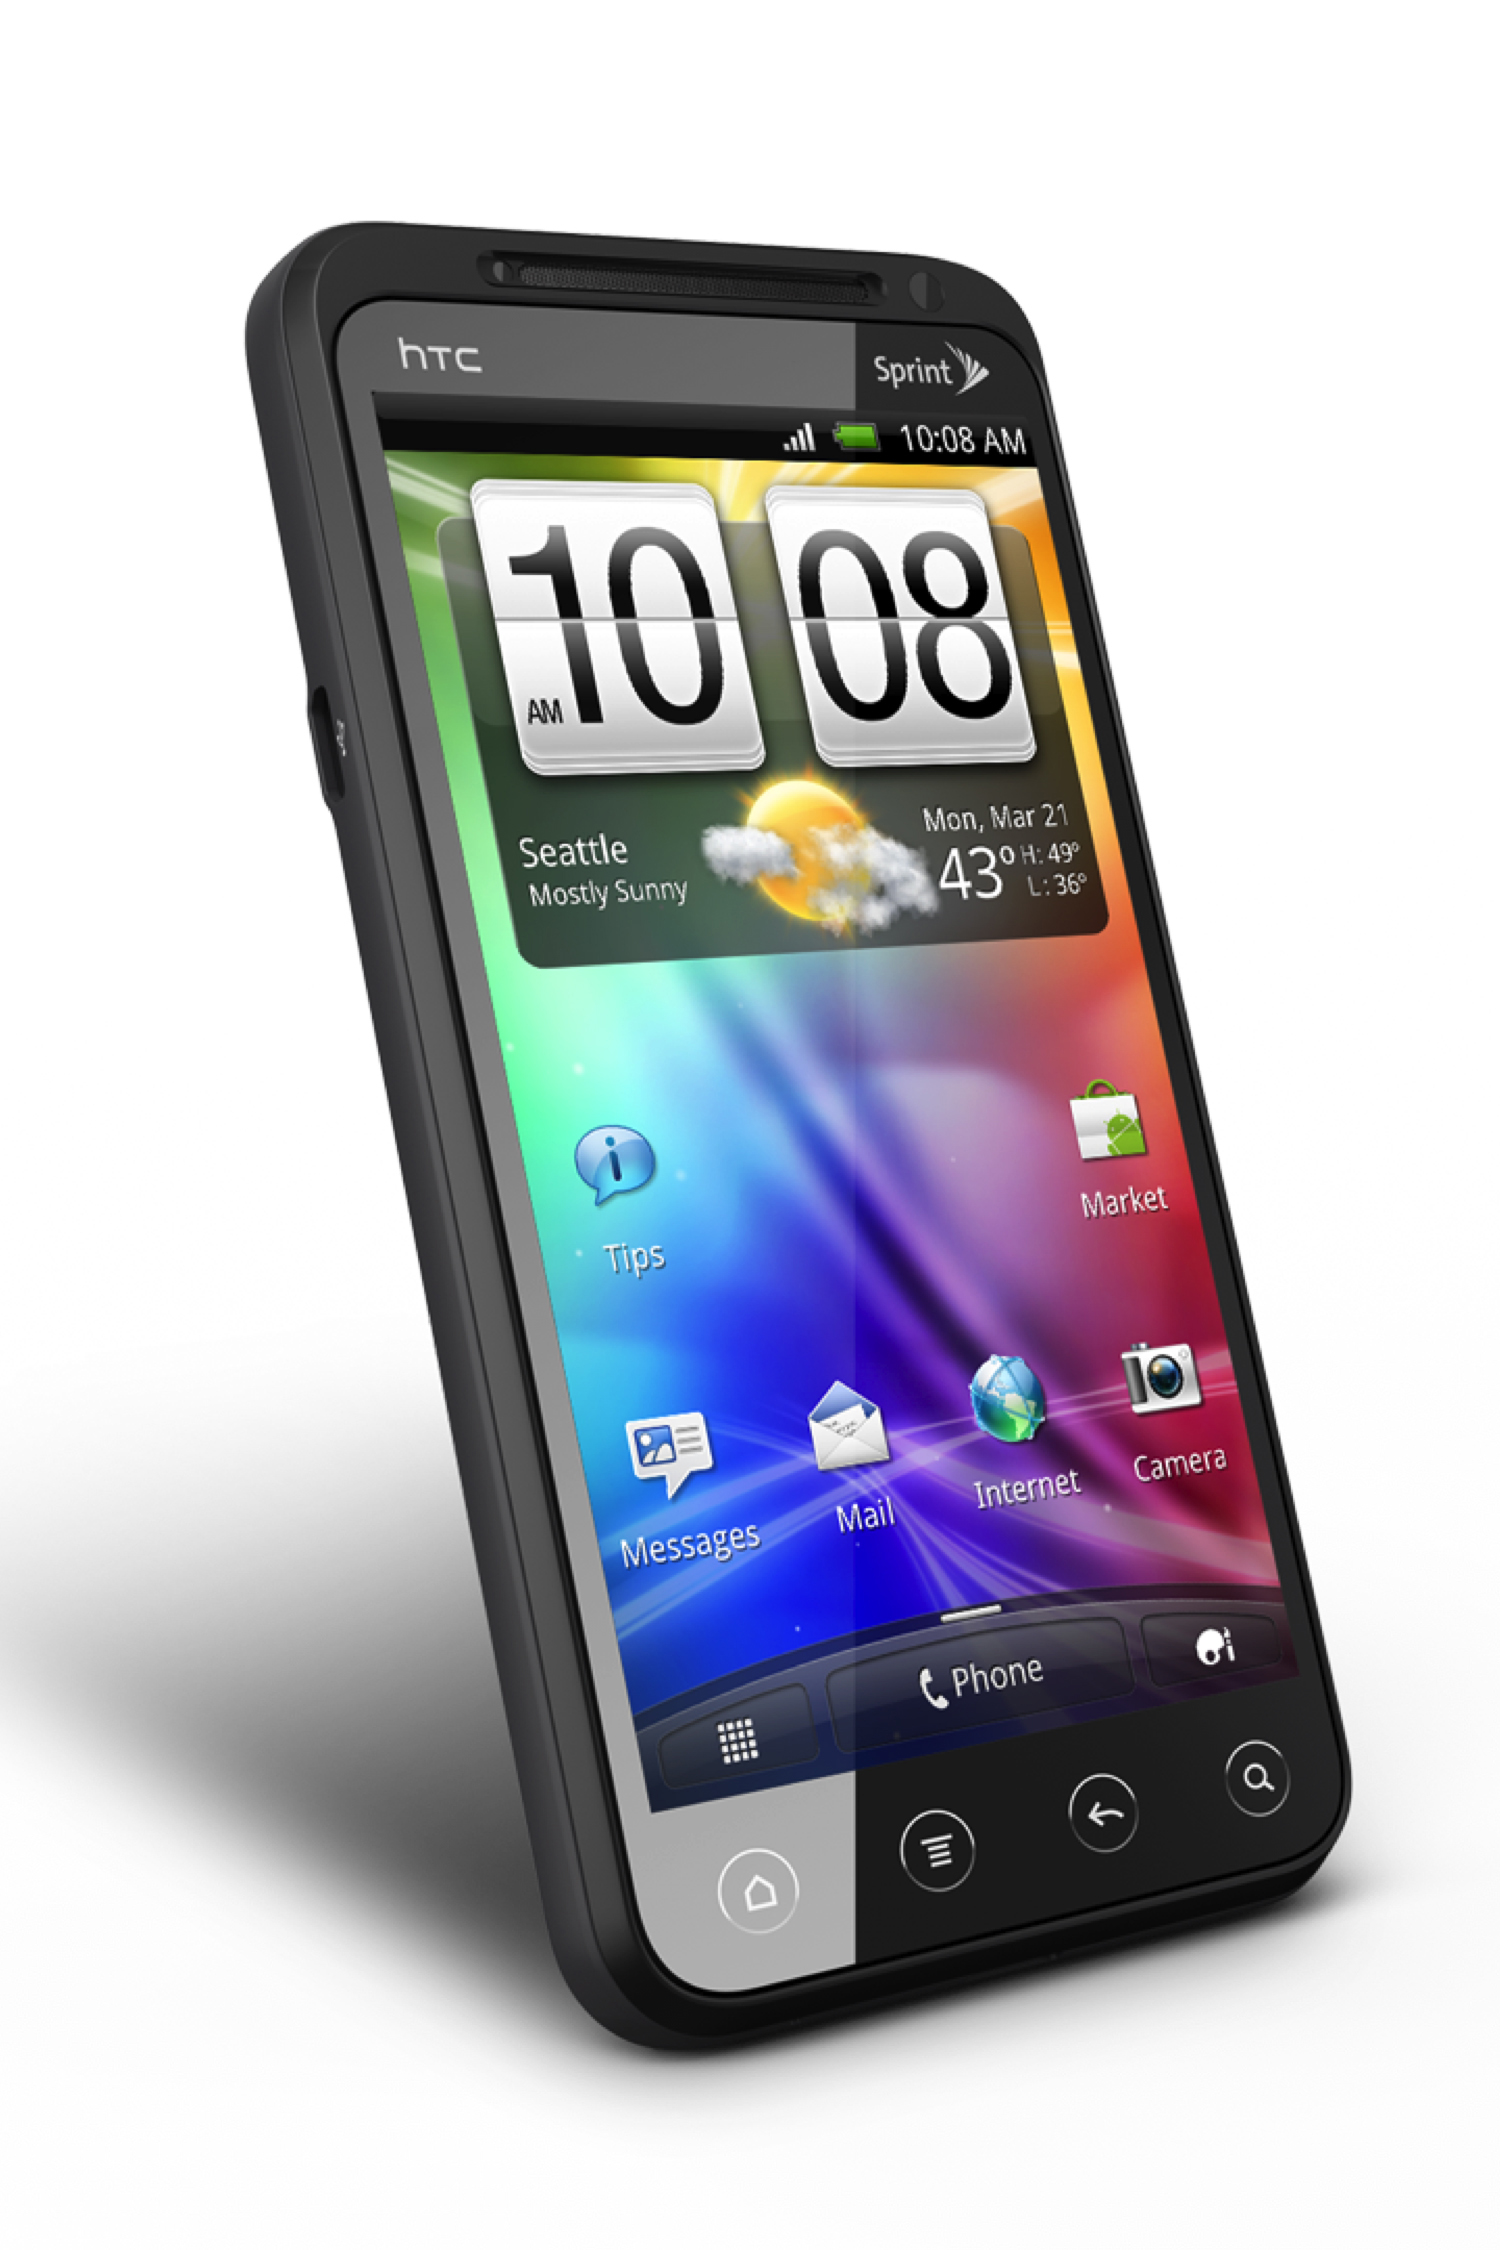 evo3d has arrived pg86100 htc sprint life spent searching rh lifespentsearching com Sprint HTC Hero Sprint HTC Update